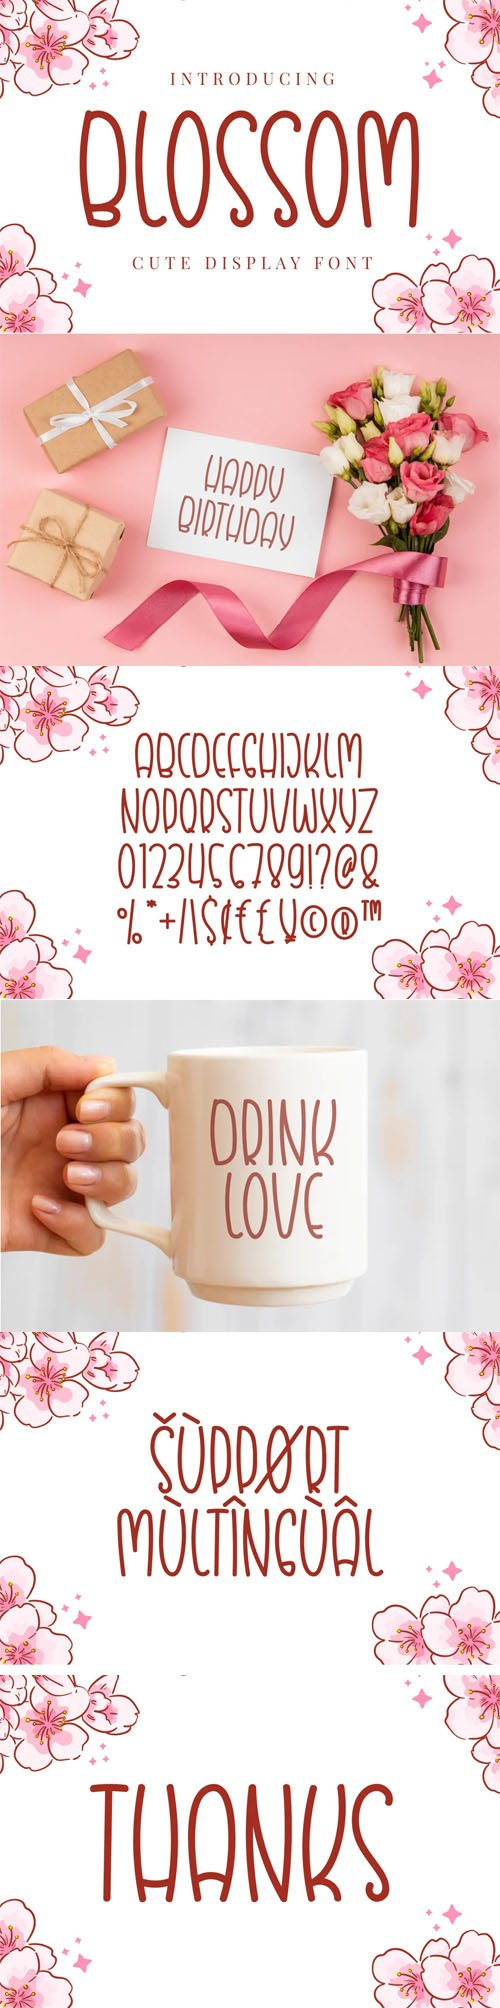 Blossom - Quirky & Cute Display Font